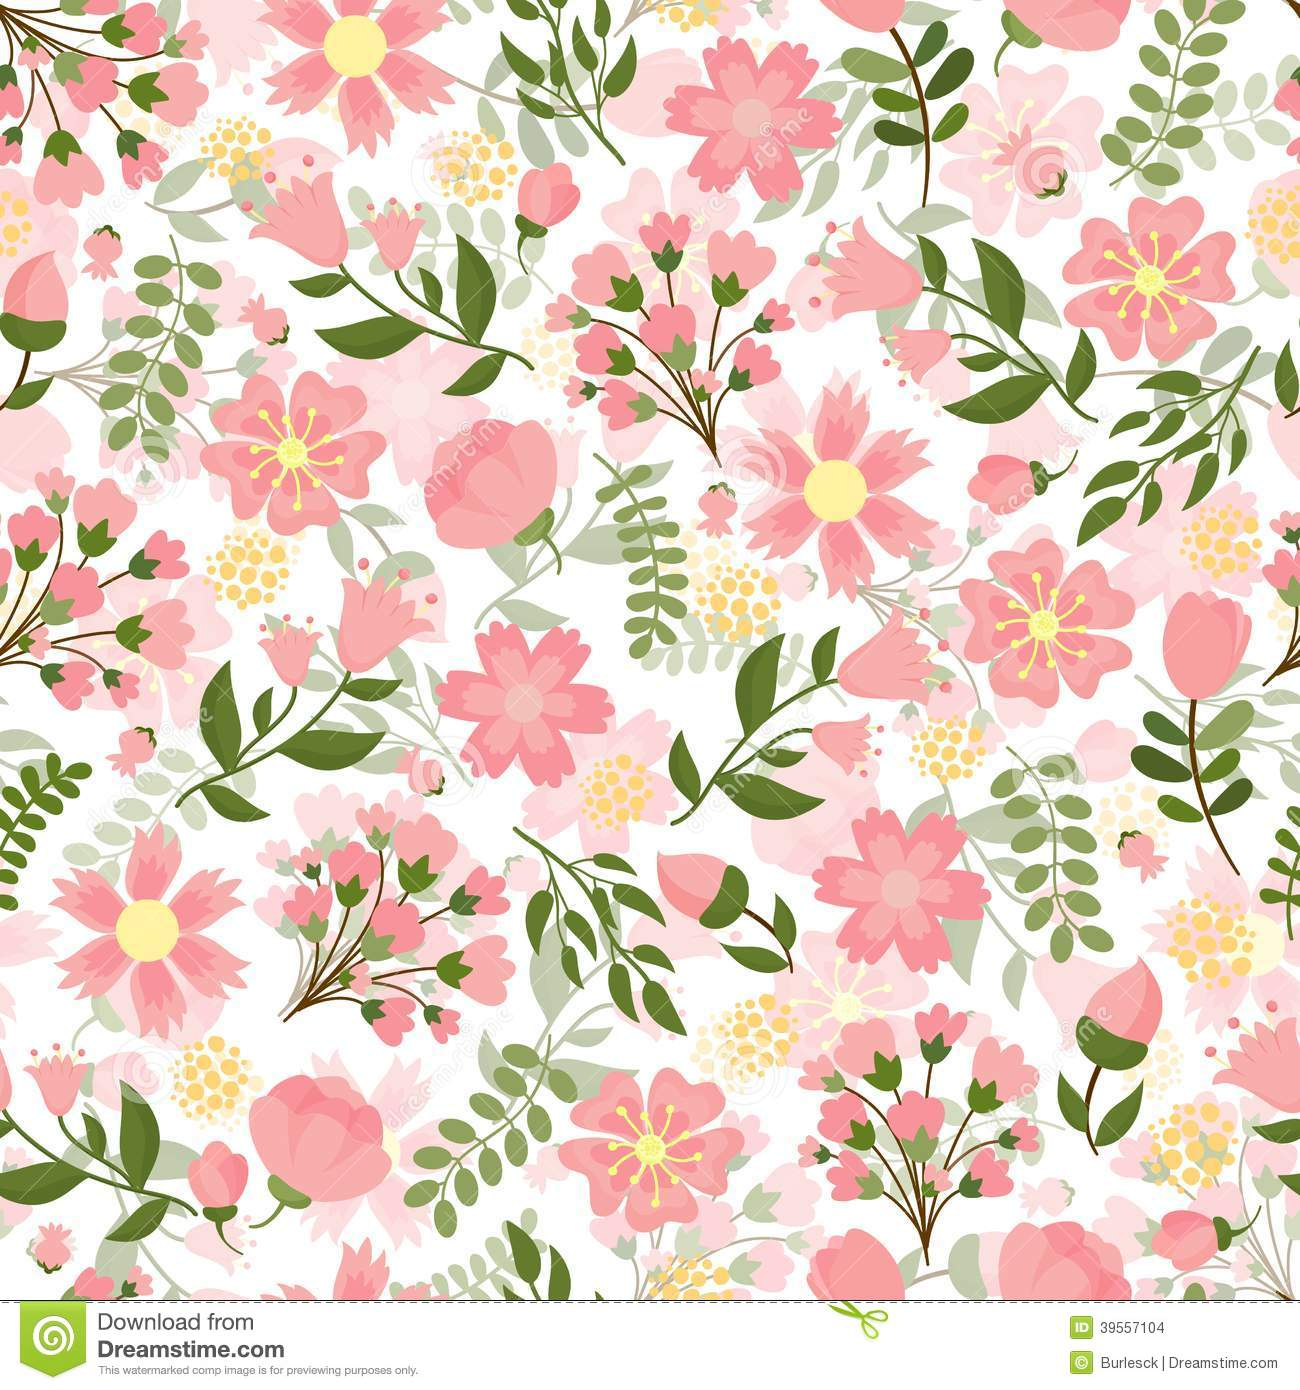 Seamless Spring Floral Background Stock Vector - Illustration of ... for Green And Pink Flower Wallpaper  181obs